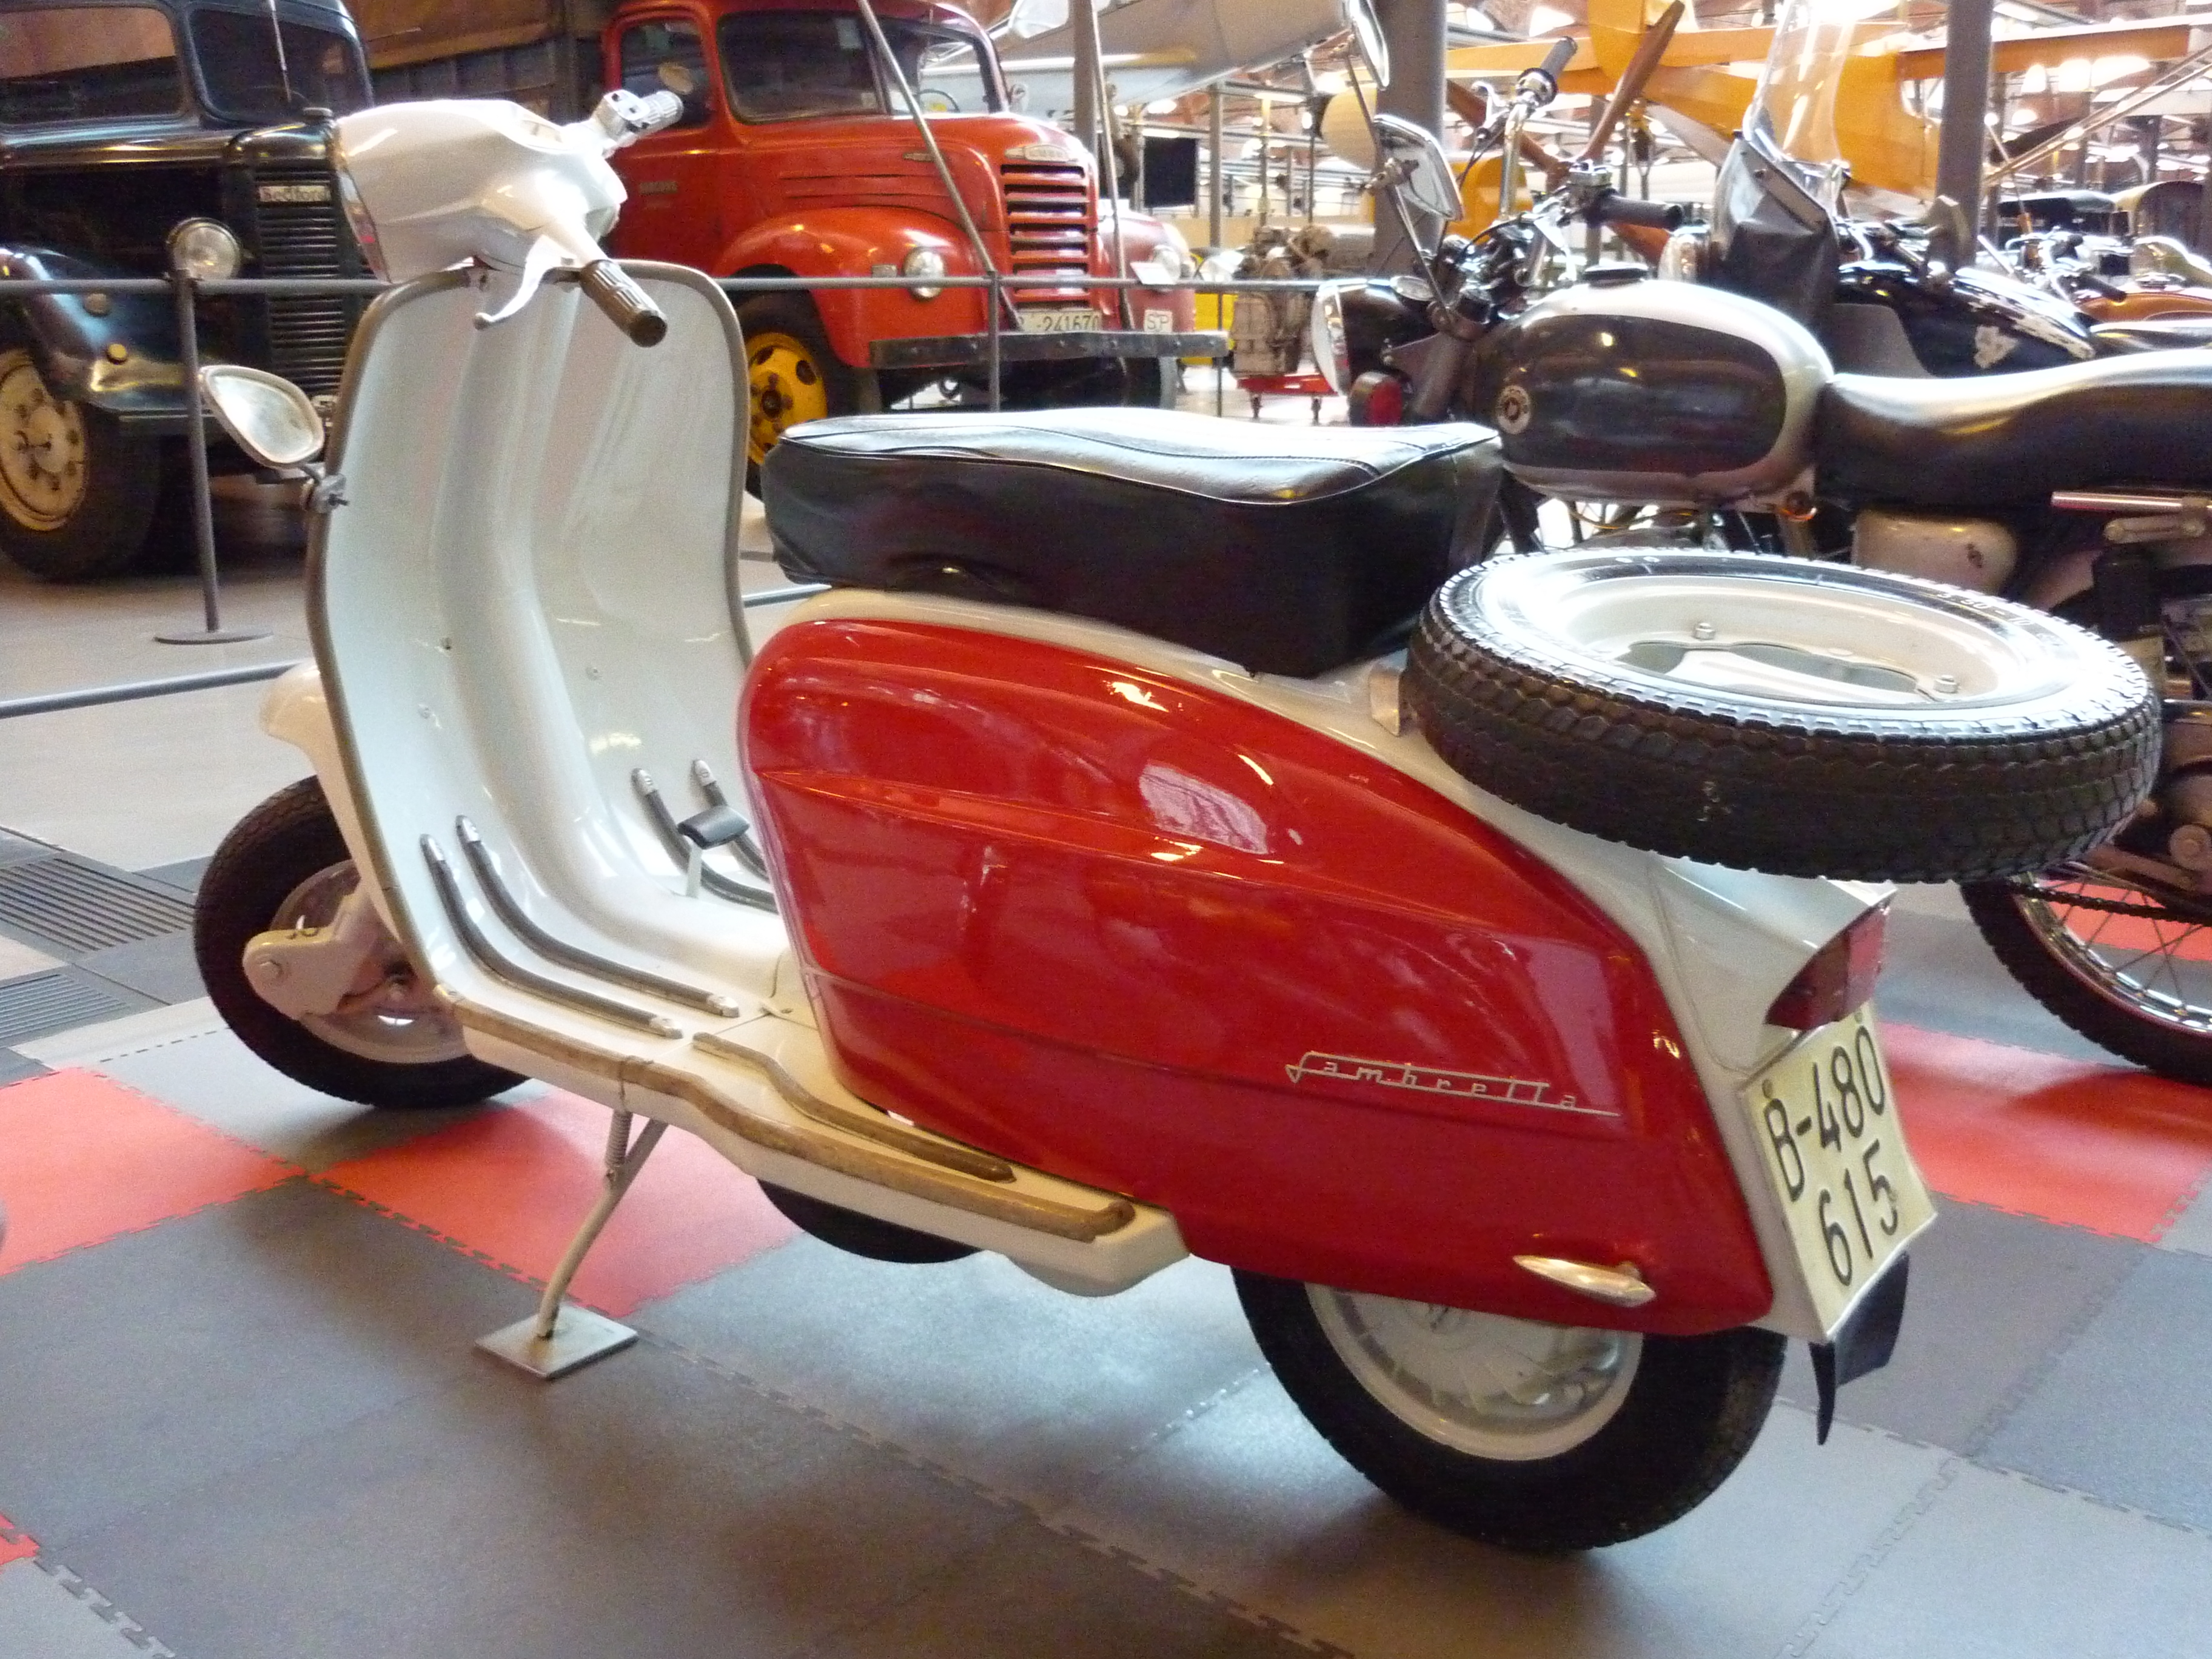 Lambretta Scooter #7